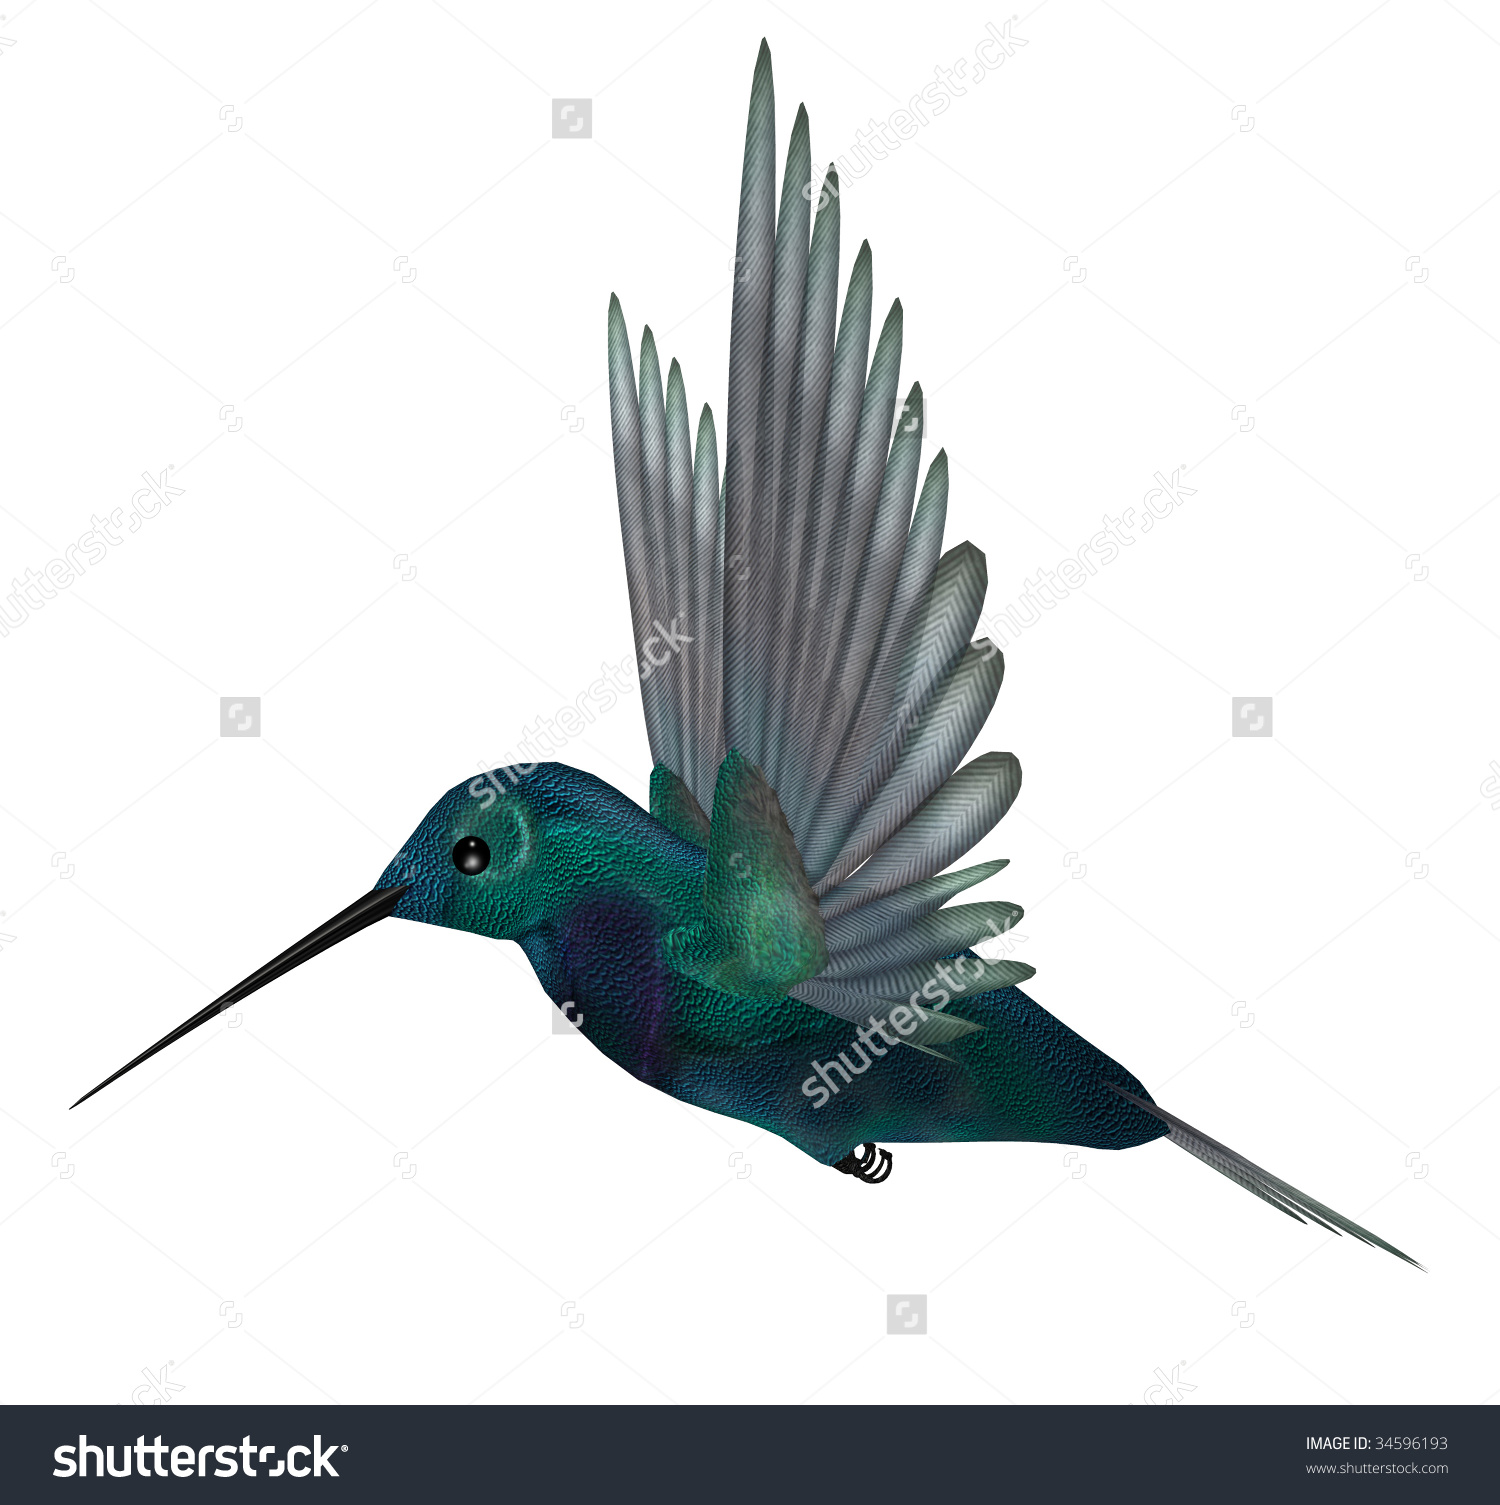 Blue Green Hummingbird Having Brilliant Iridescent Plumage And.